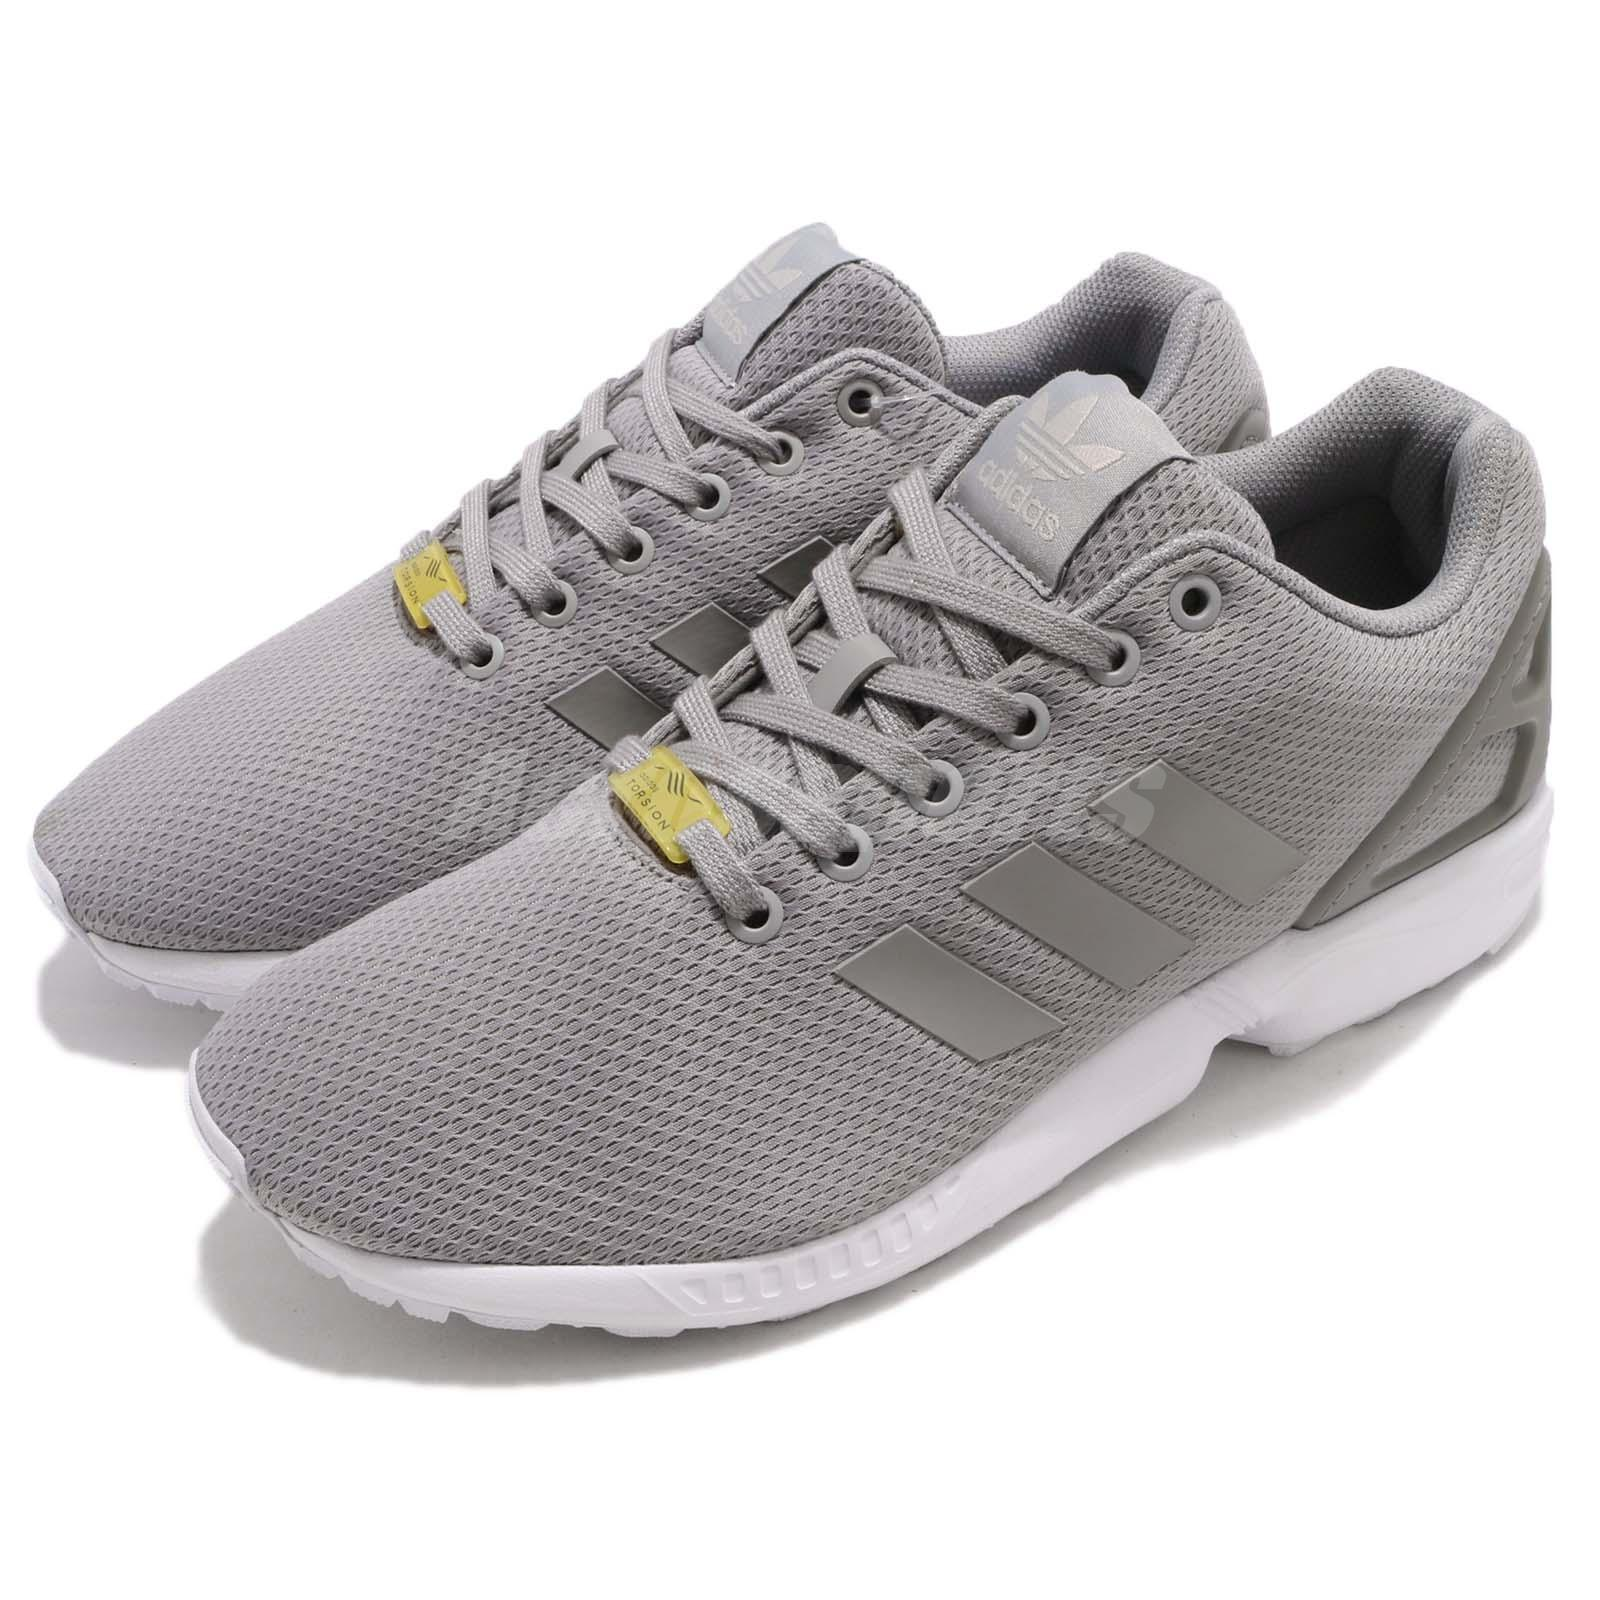 huge selection of c0278 ec92b Details about adidas Originals ZX Flux Grey White Mens Running Shoes  Sneakers Trainers M19838